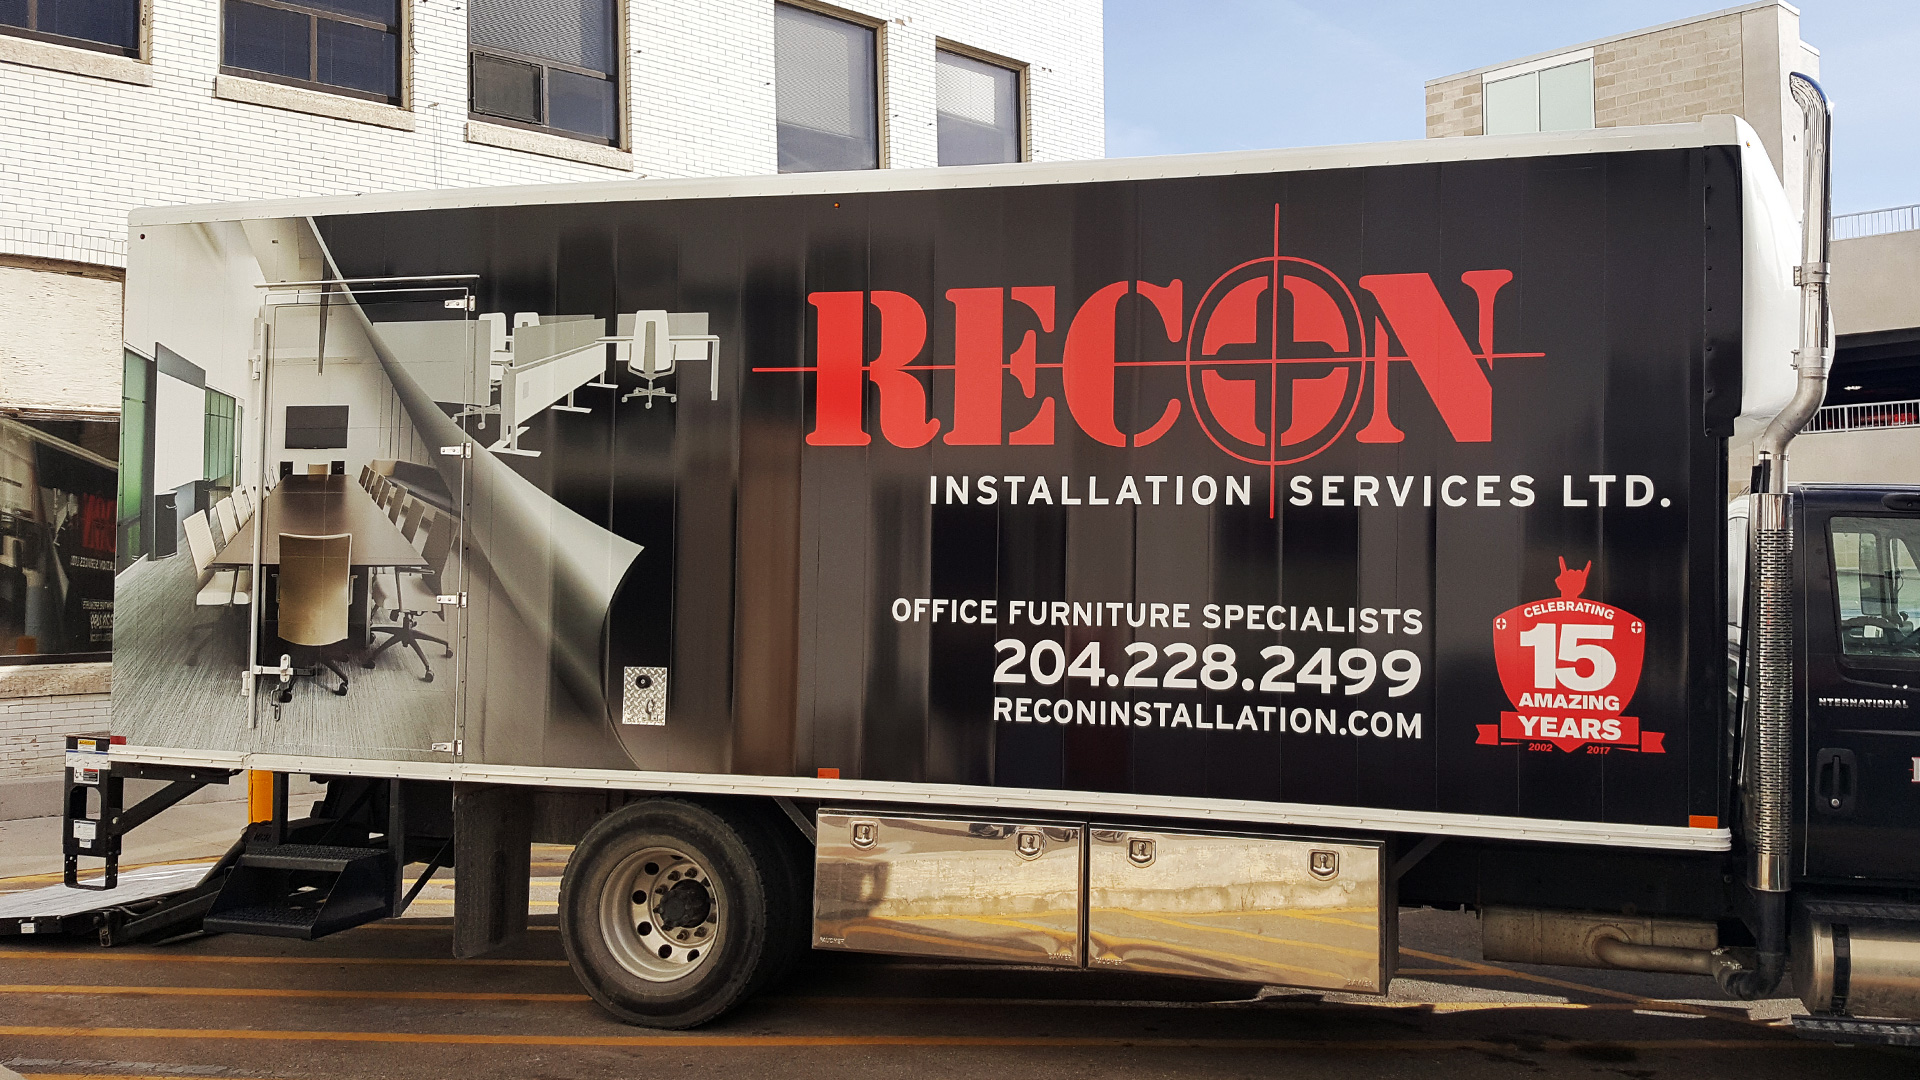 Recon Installation Services